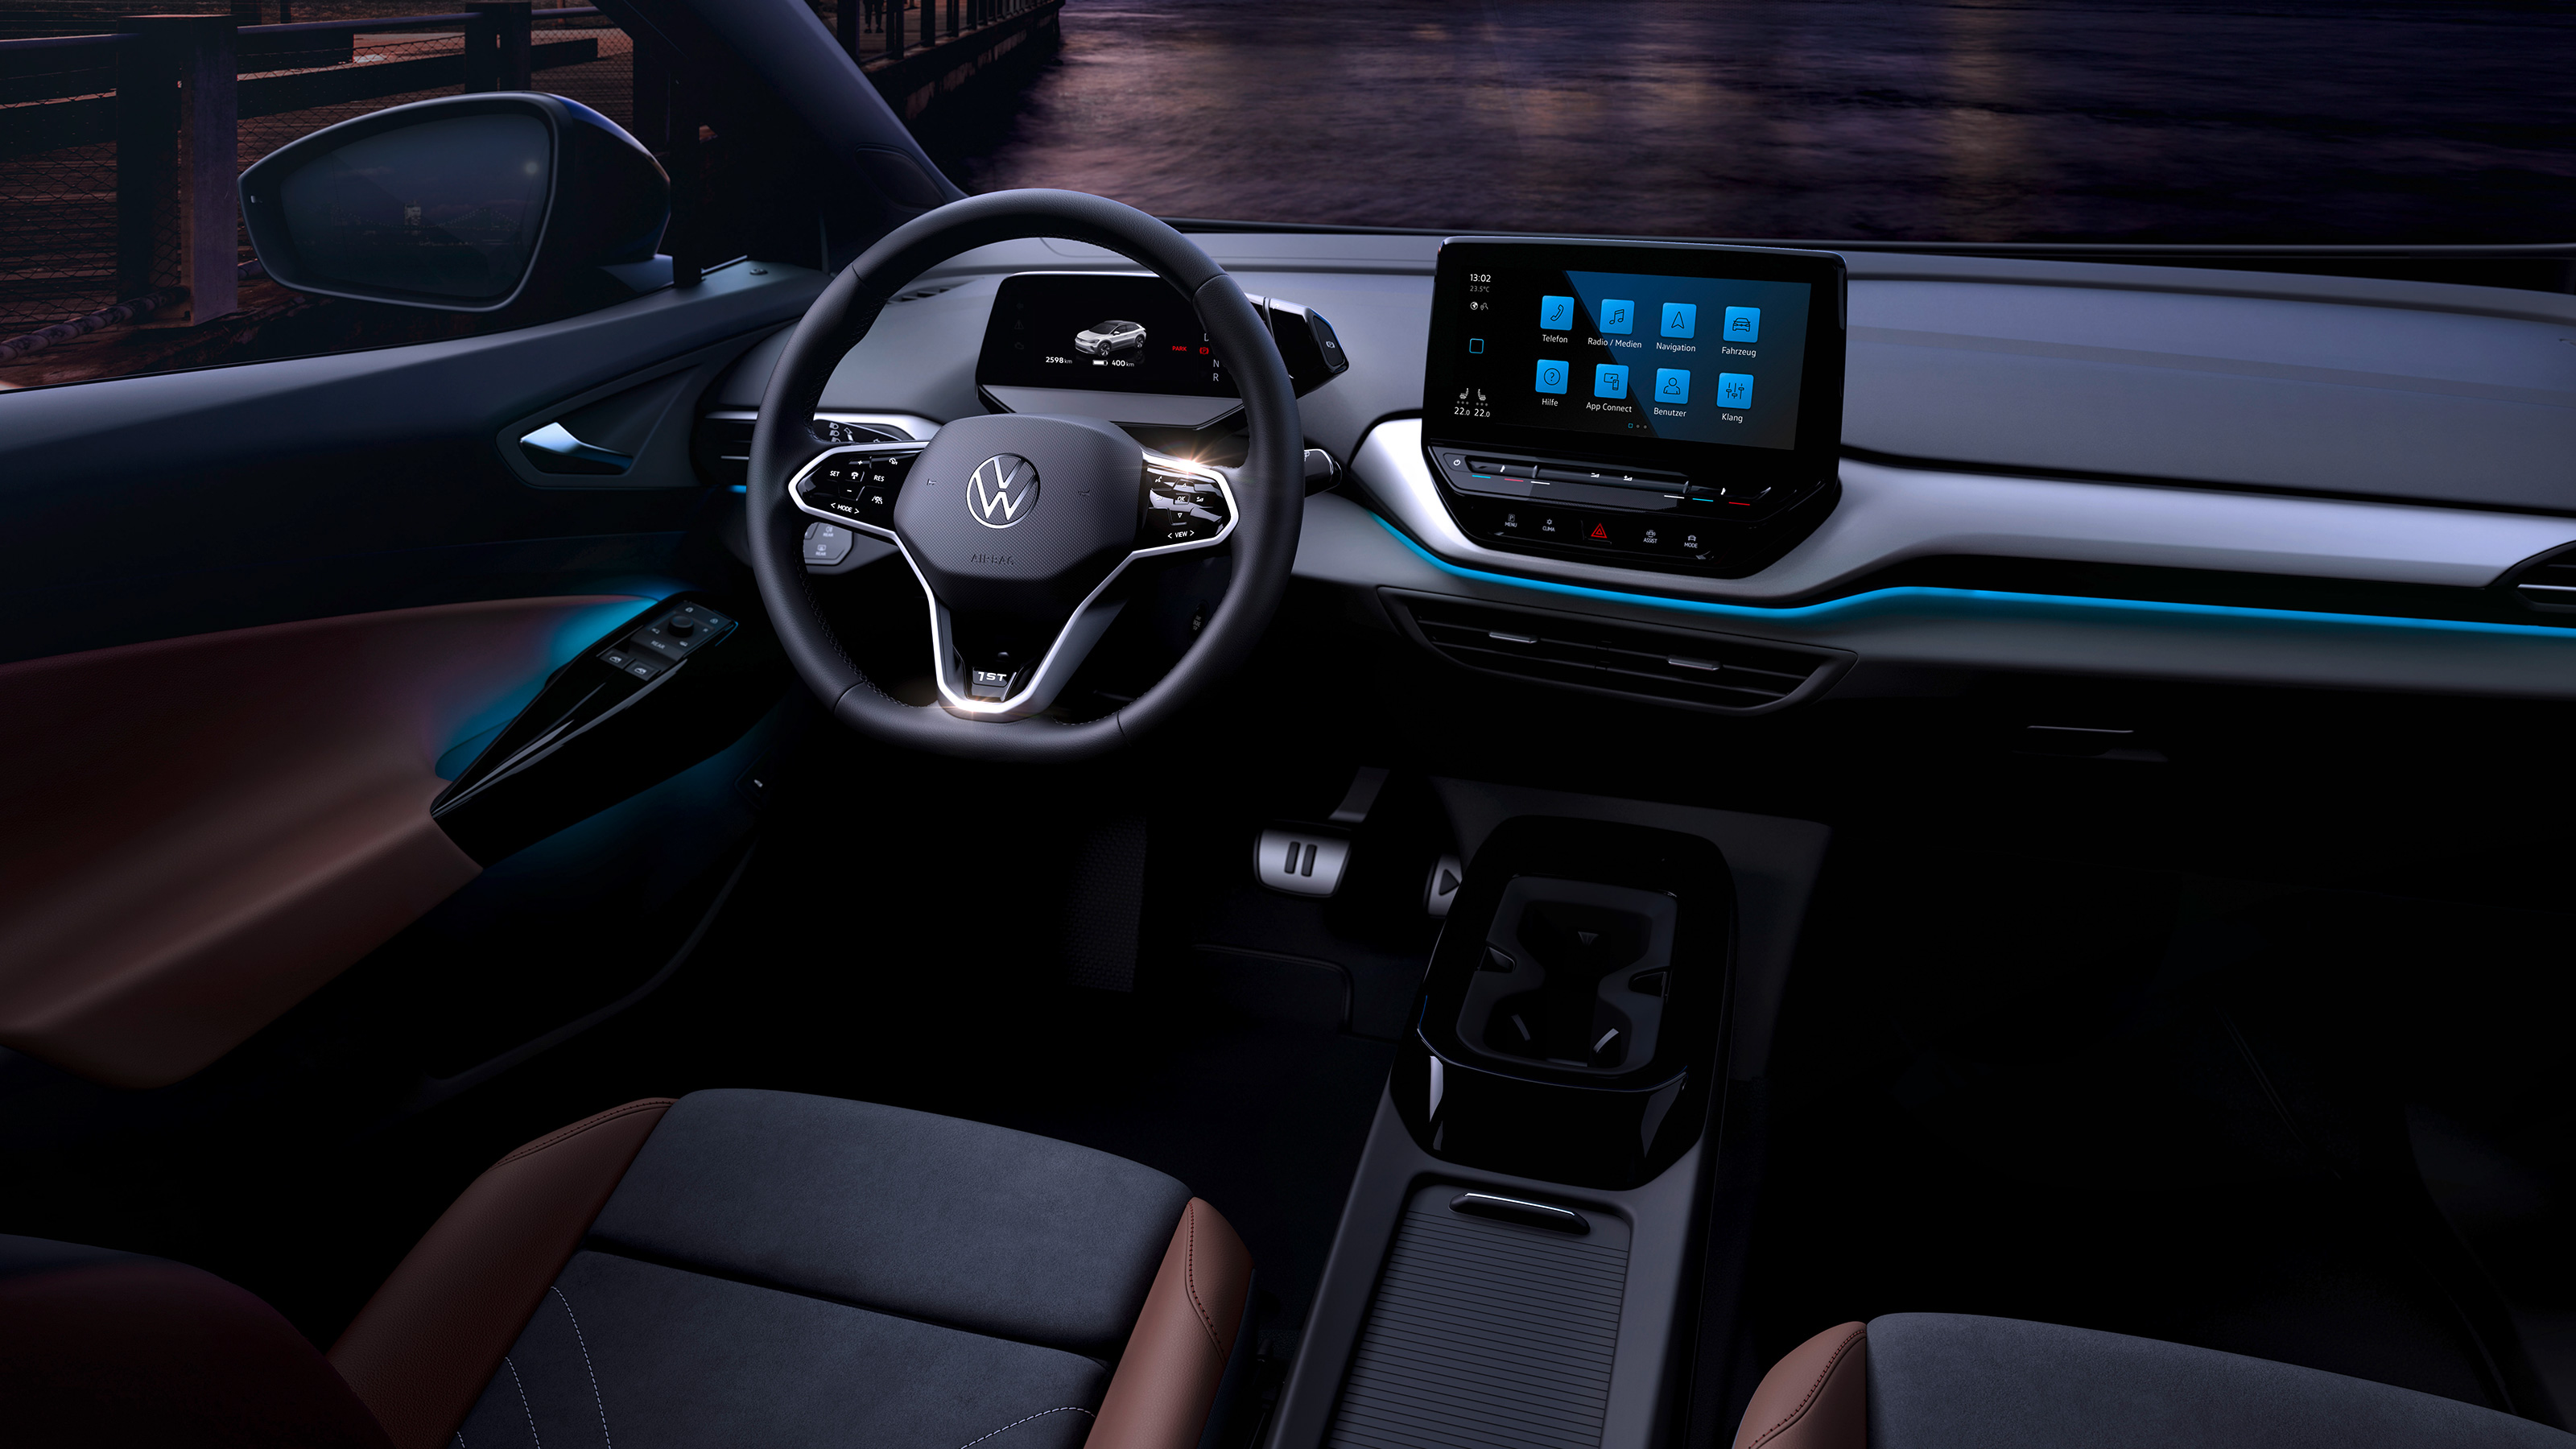 New 2021 Volkswagen ID.4 interior teased ahead of launch ...